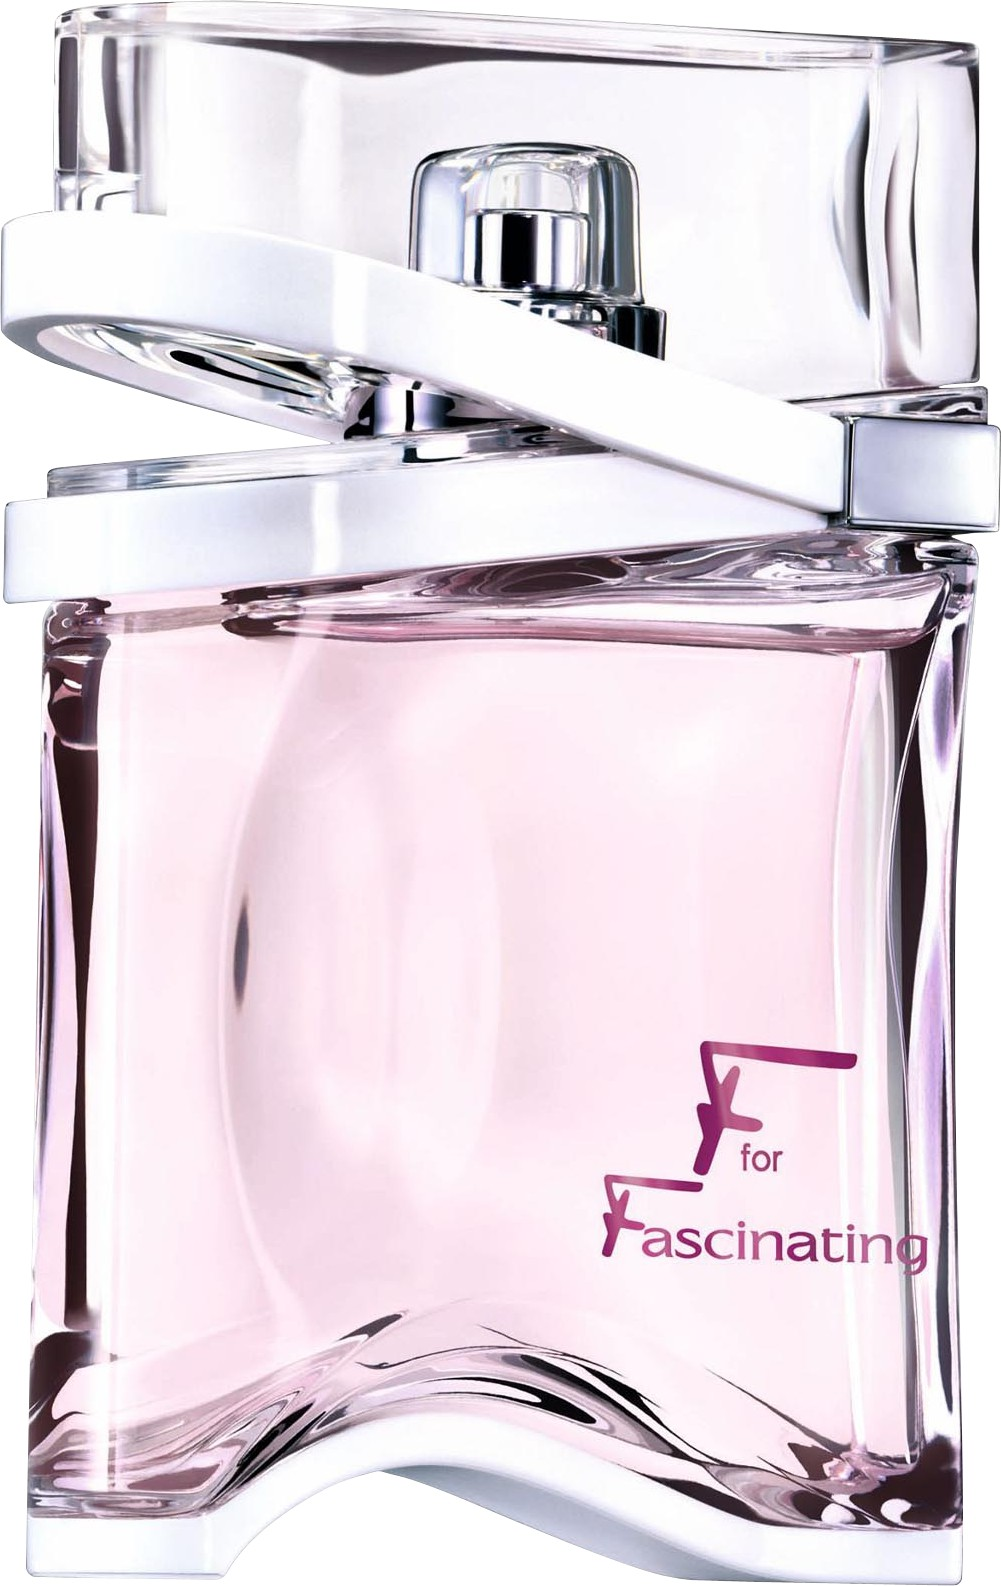 Salvatore Ferragamo F for Fascinating аромат для женщин